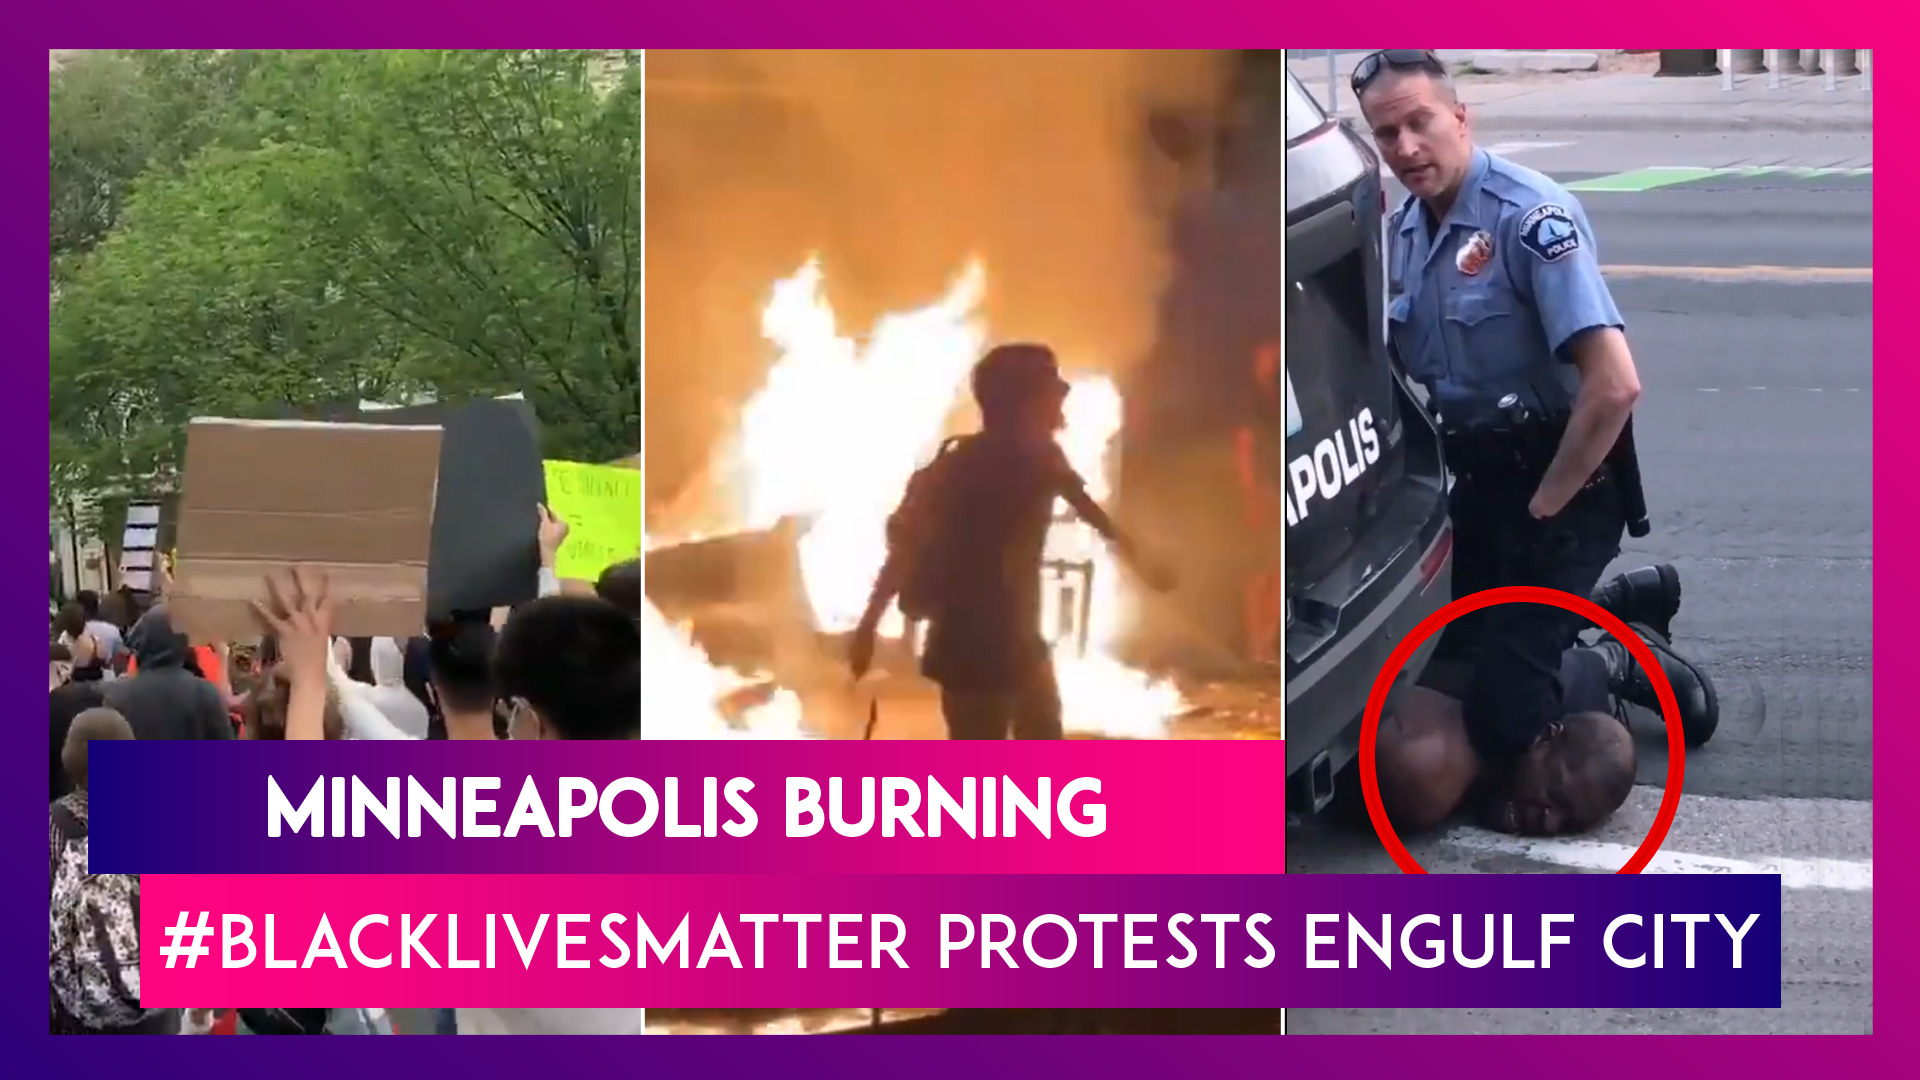 Minneapolis Riots: George Floyd Death Leads To Protests In US Cities, Minneapolis Burns Overnight